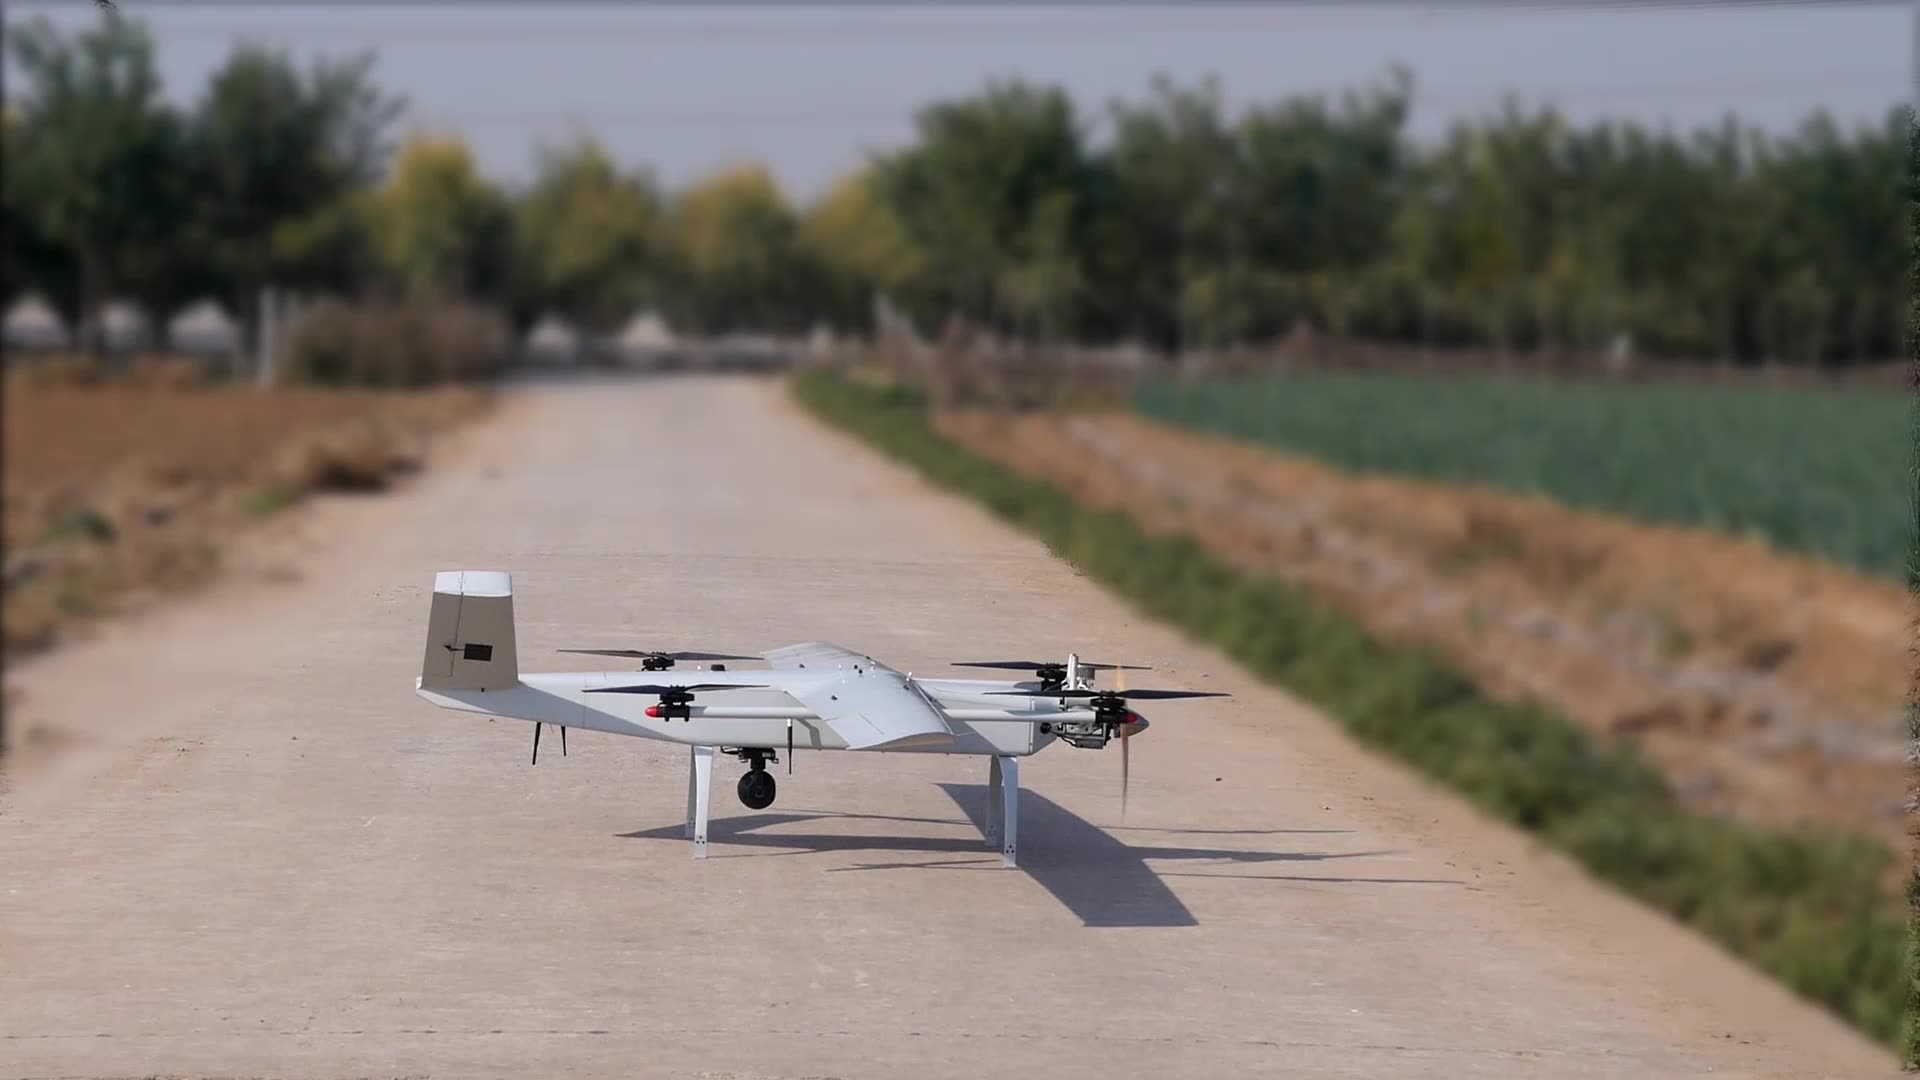 Fixed wing VTOL long range UAV Drone for commercial mapping surveying and patrolling